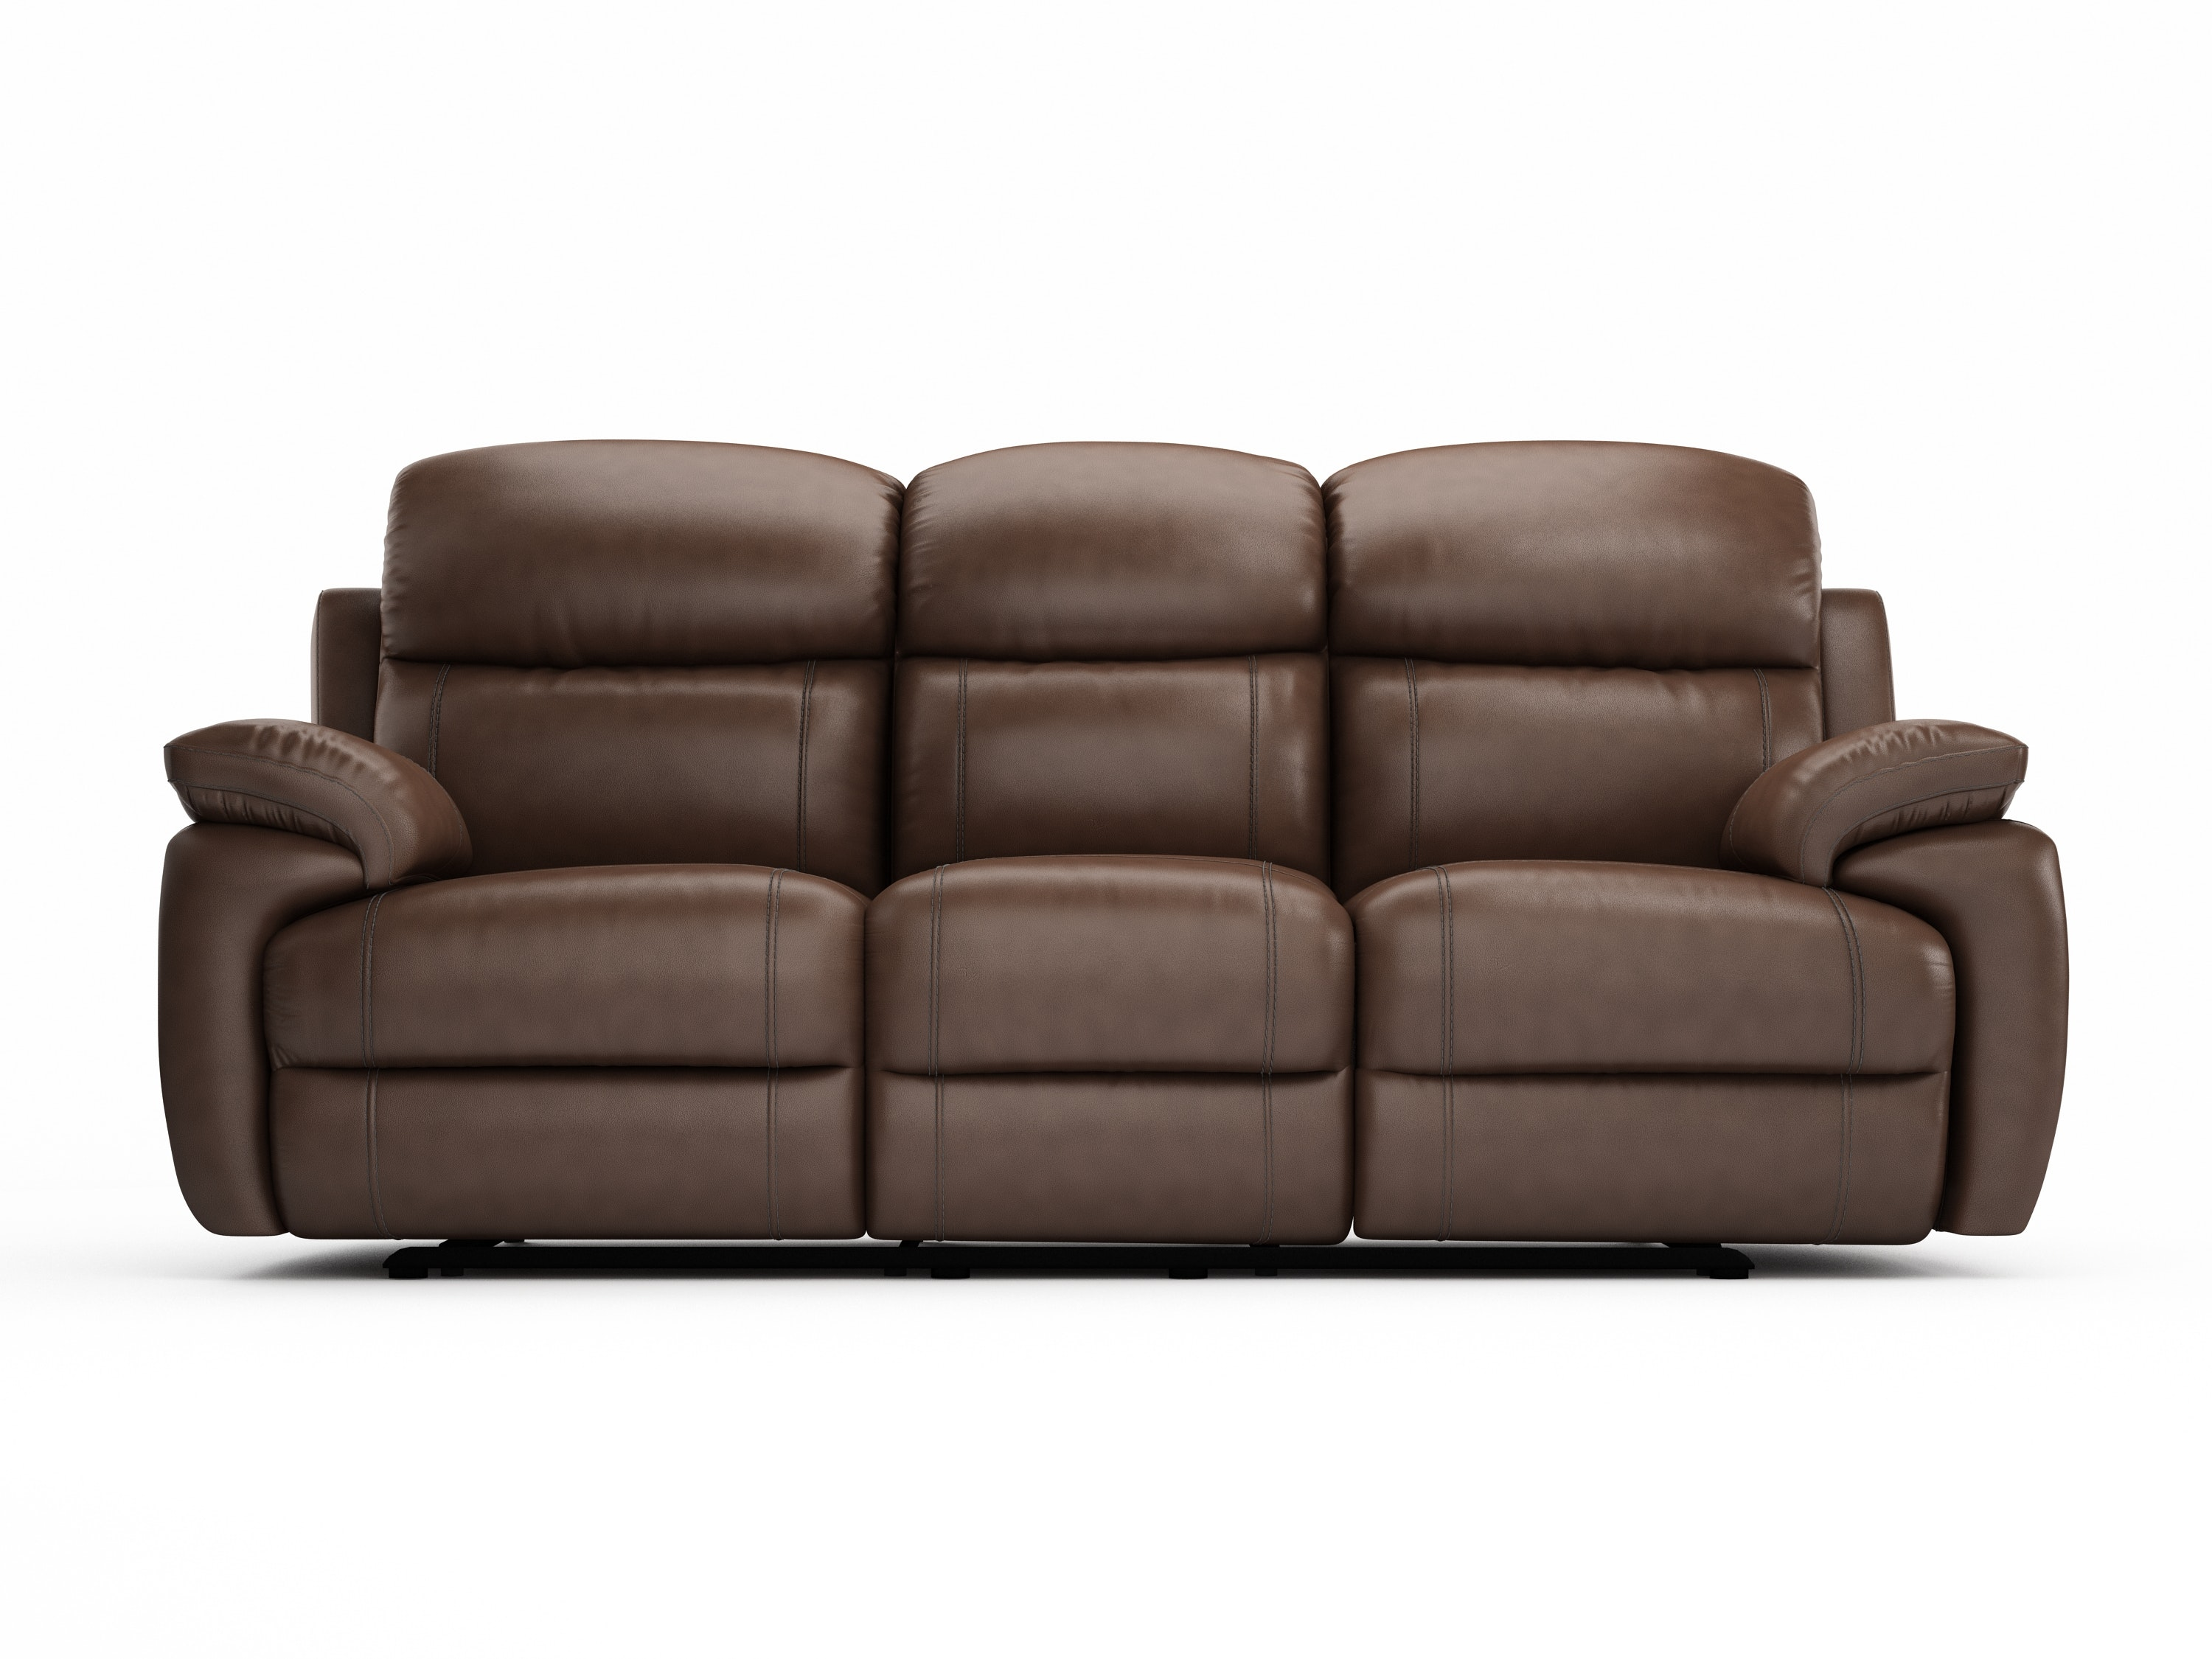 Maya 3 Seater Recliner Sofa | Colour Options